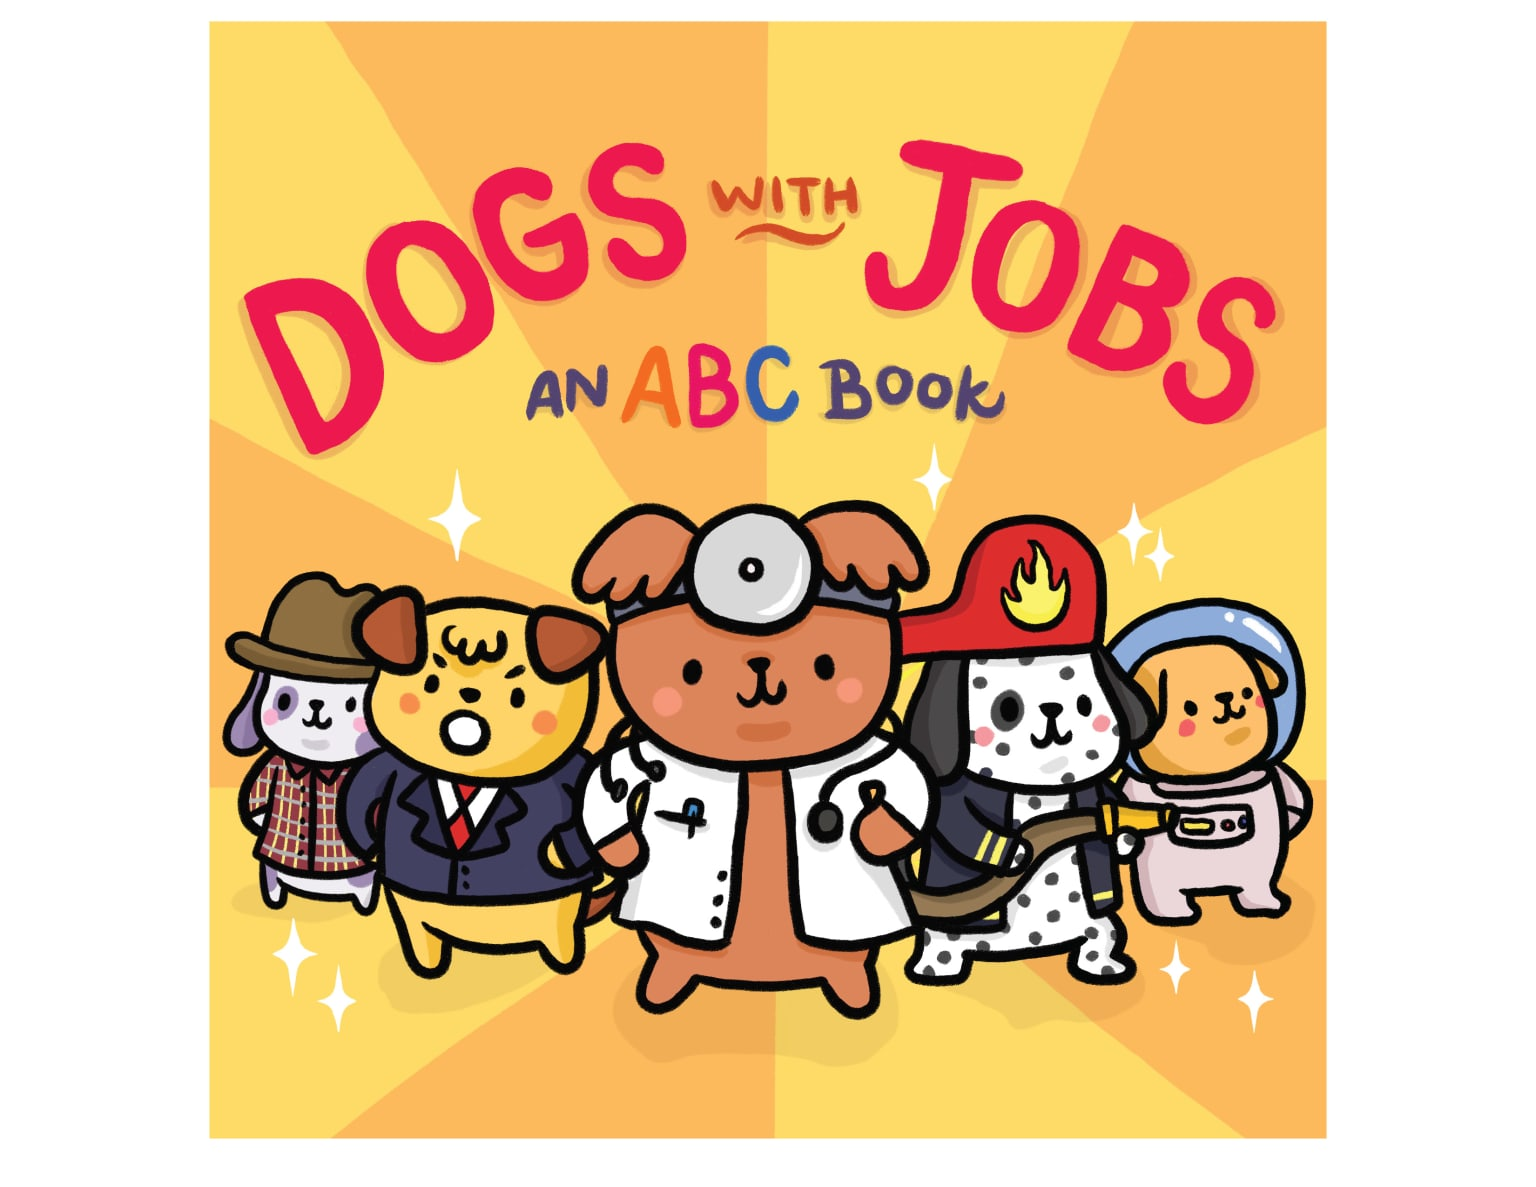 ABC - Dogs with Jobs